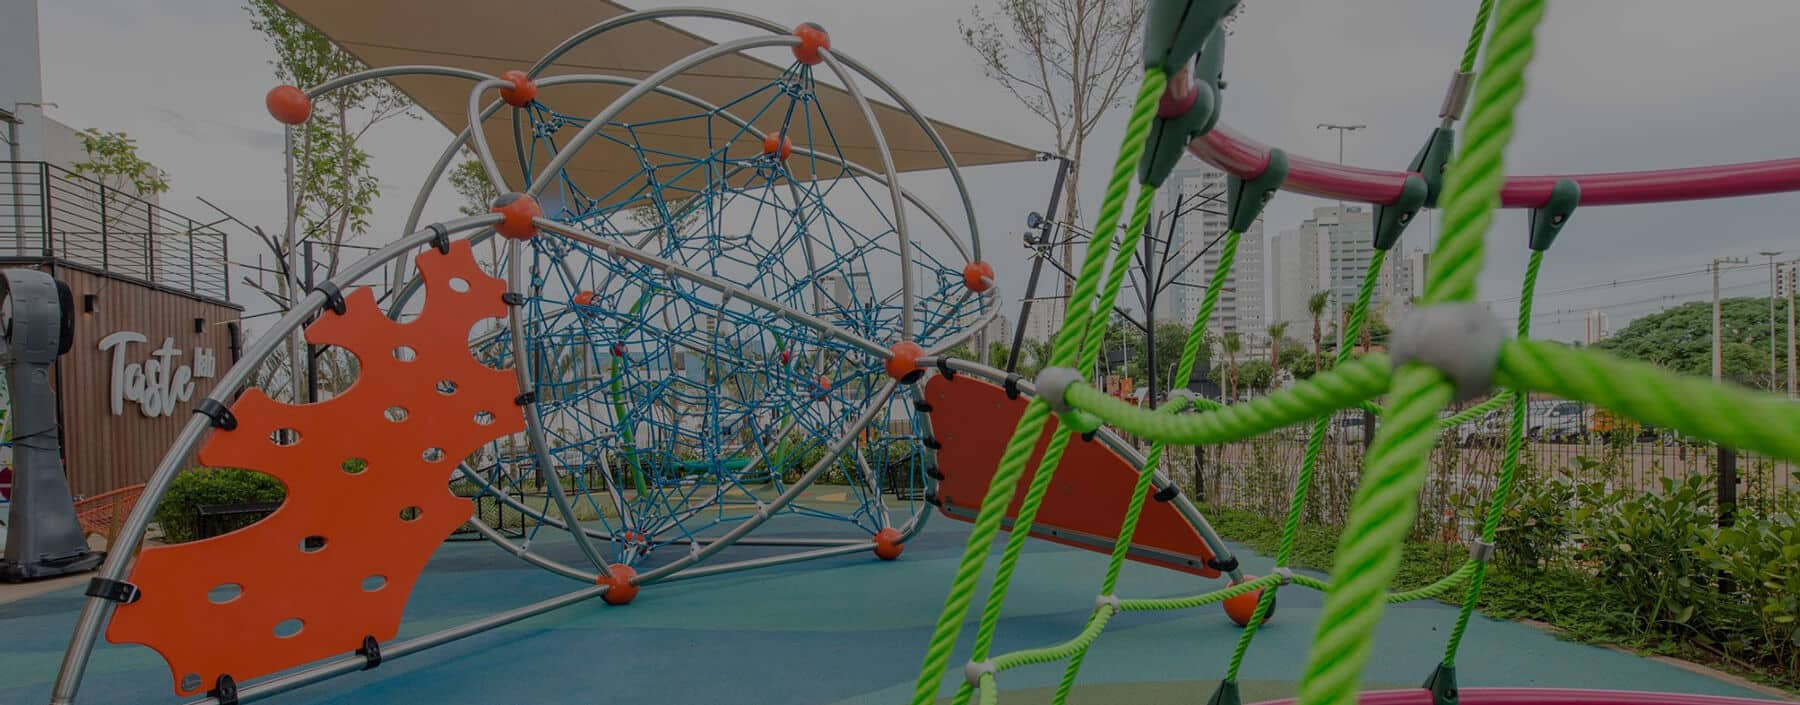 Berliner - Commercial Playground Installation